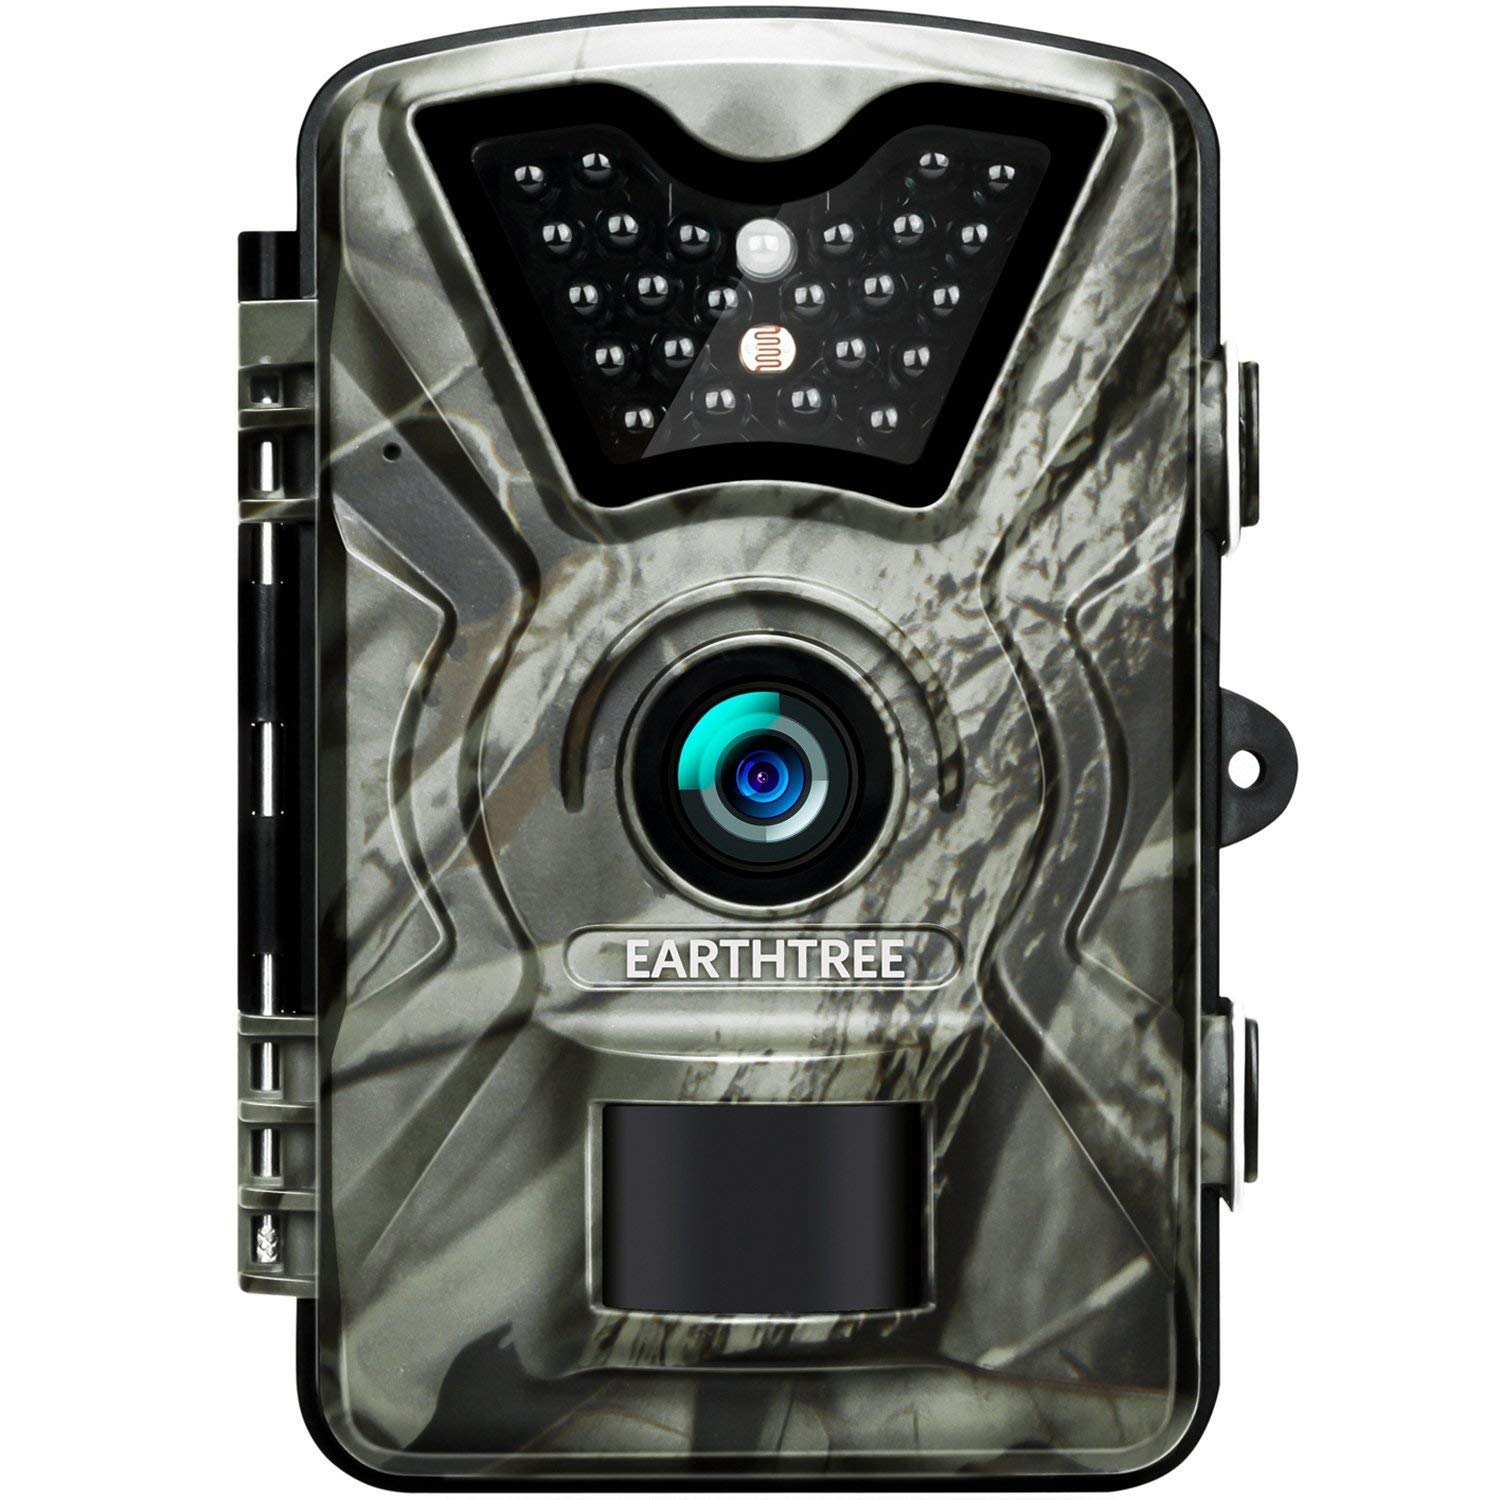 Earthtree Trail Game Camera 12MP 1080P Deer Hunting Camera with 940nm IR LEDs,0.5s Trigger Speed,Night Vision Up to 65ft 20m,2.4 Display,IP66 Water Resistance for Game Home Security